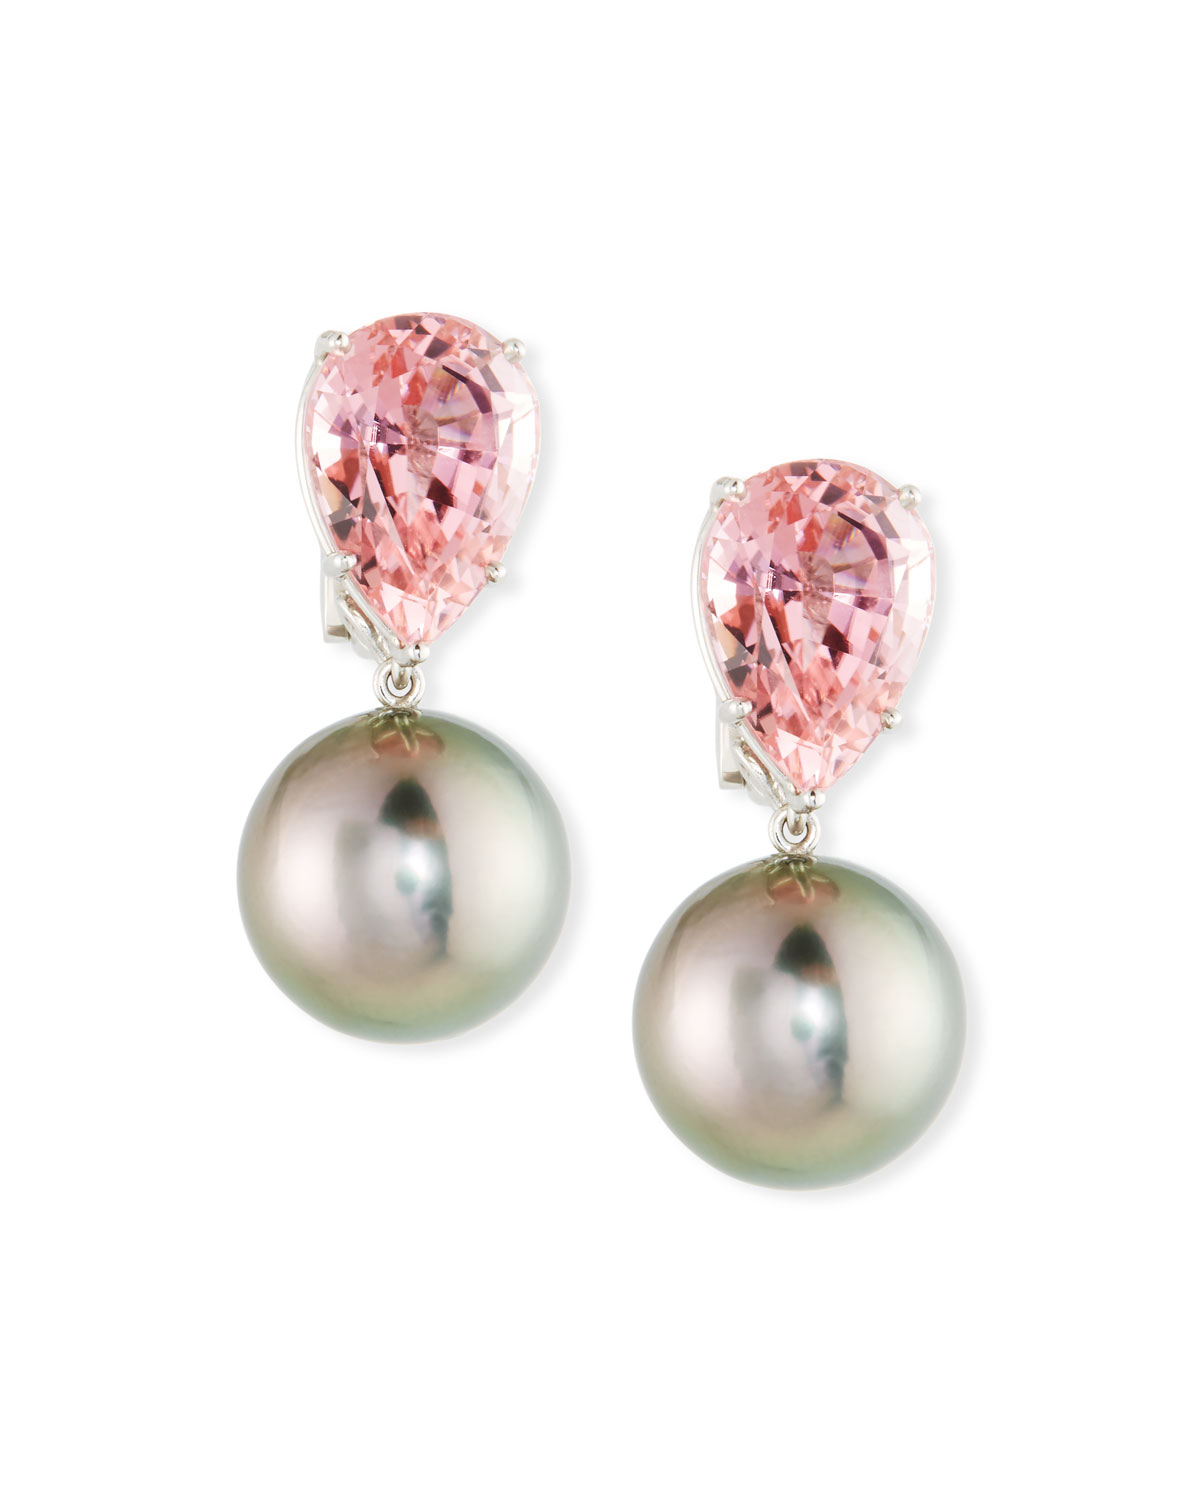 ASSAEL 18K White Gold Tourmaline & Pearl Clip-On Earrings